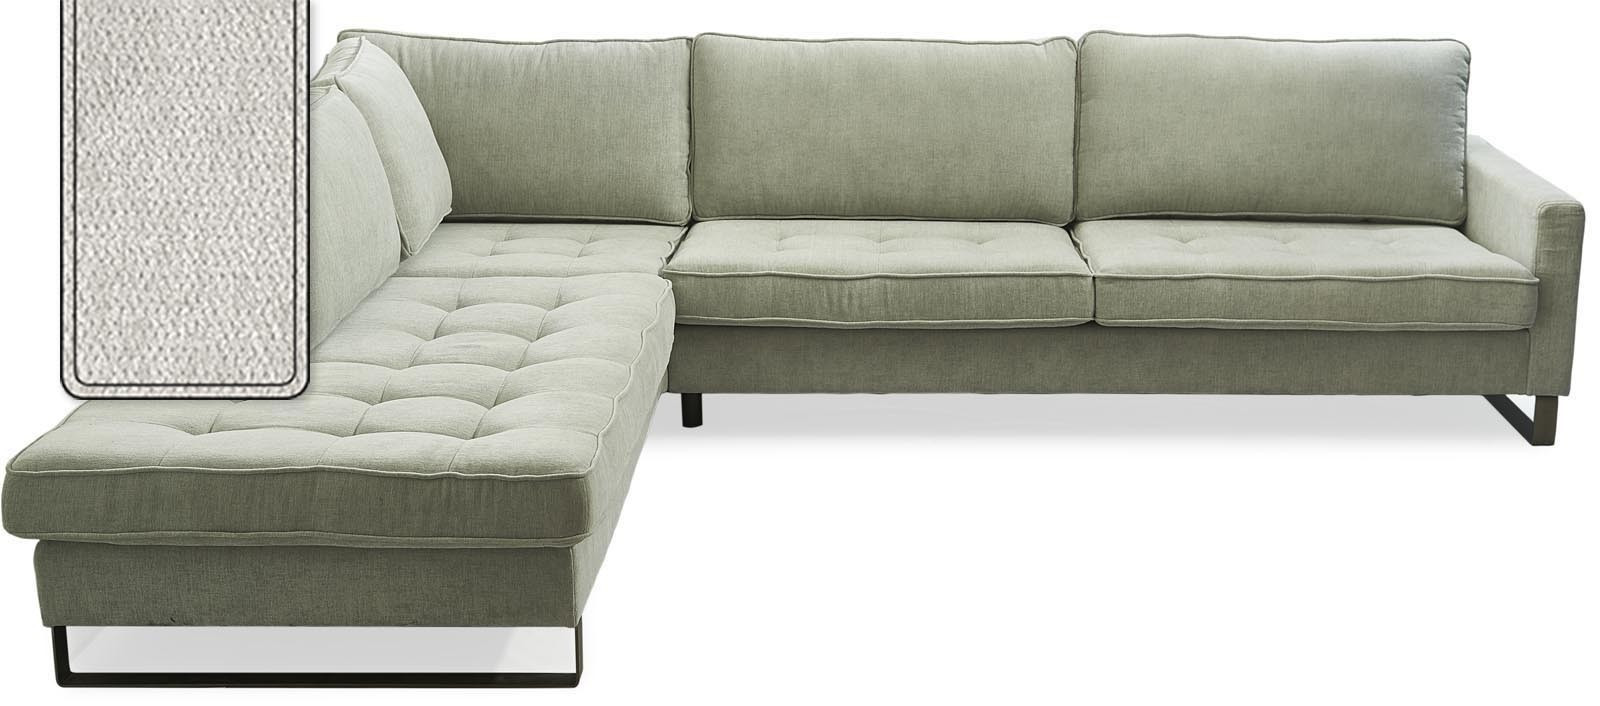 West Houston Corner Sofa Chaise Longue Left Polyster-Polyacryl Pearl / Rivièra Maison